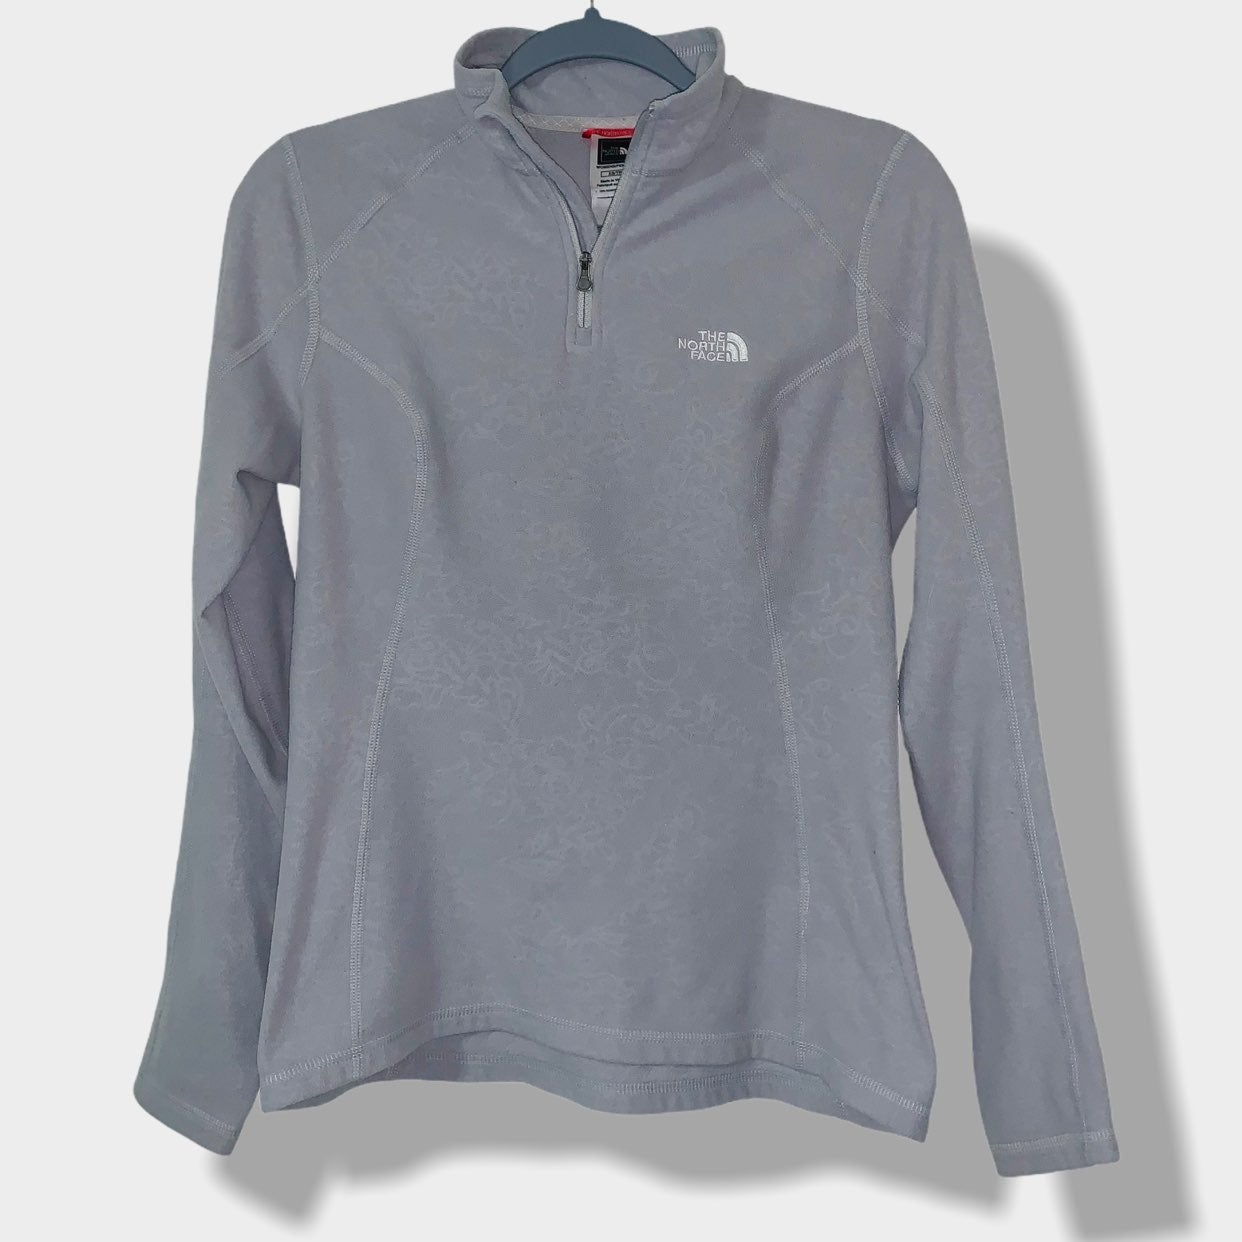 North Face womens quarter zip pullover